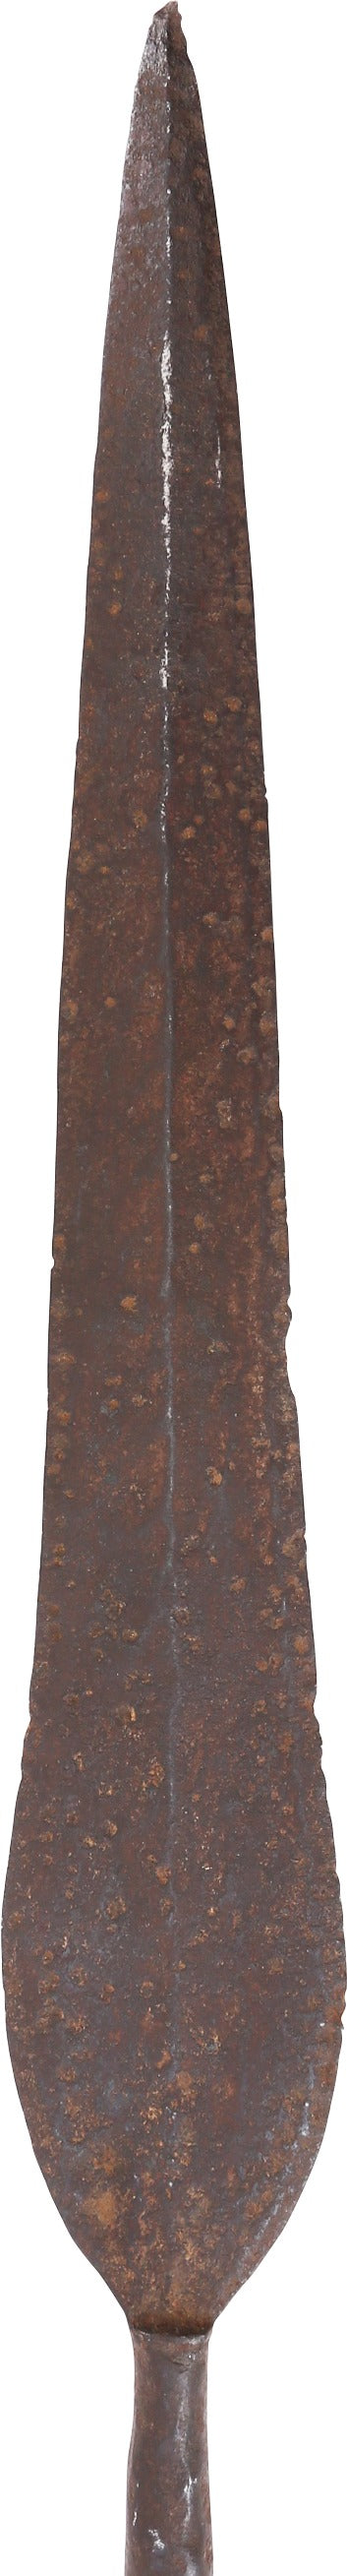 CONGOLESE SLAVER'S SPEAR, SECOND HALF OF THE 19th CENTURY